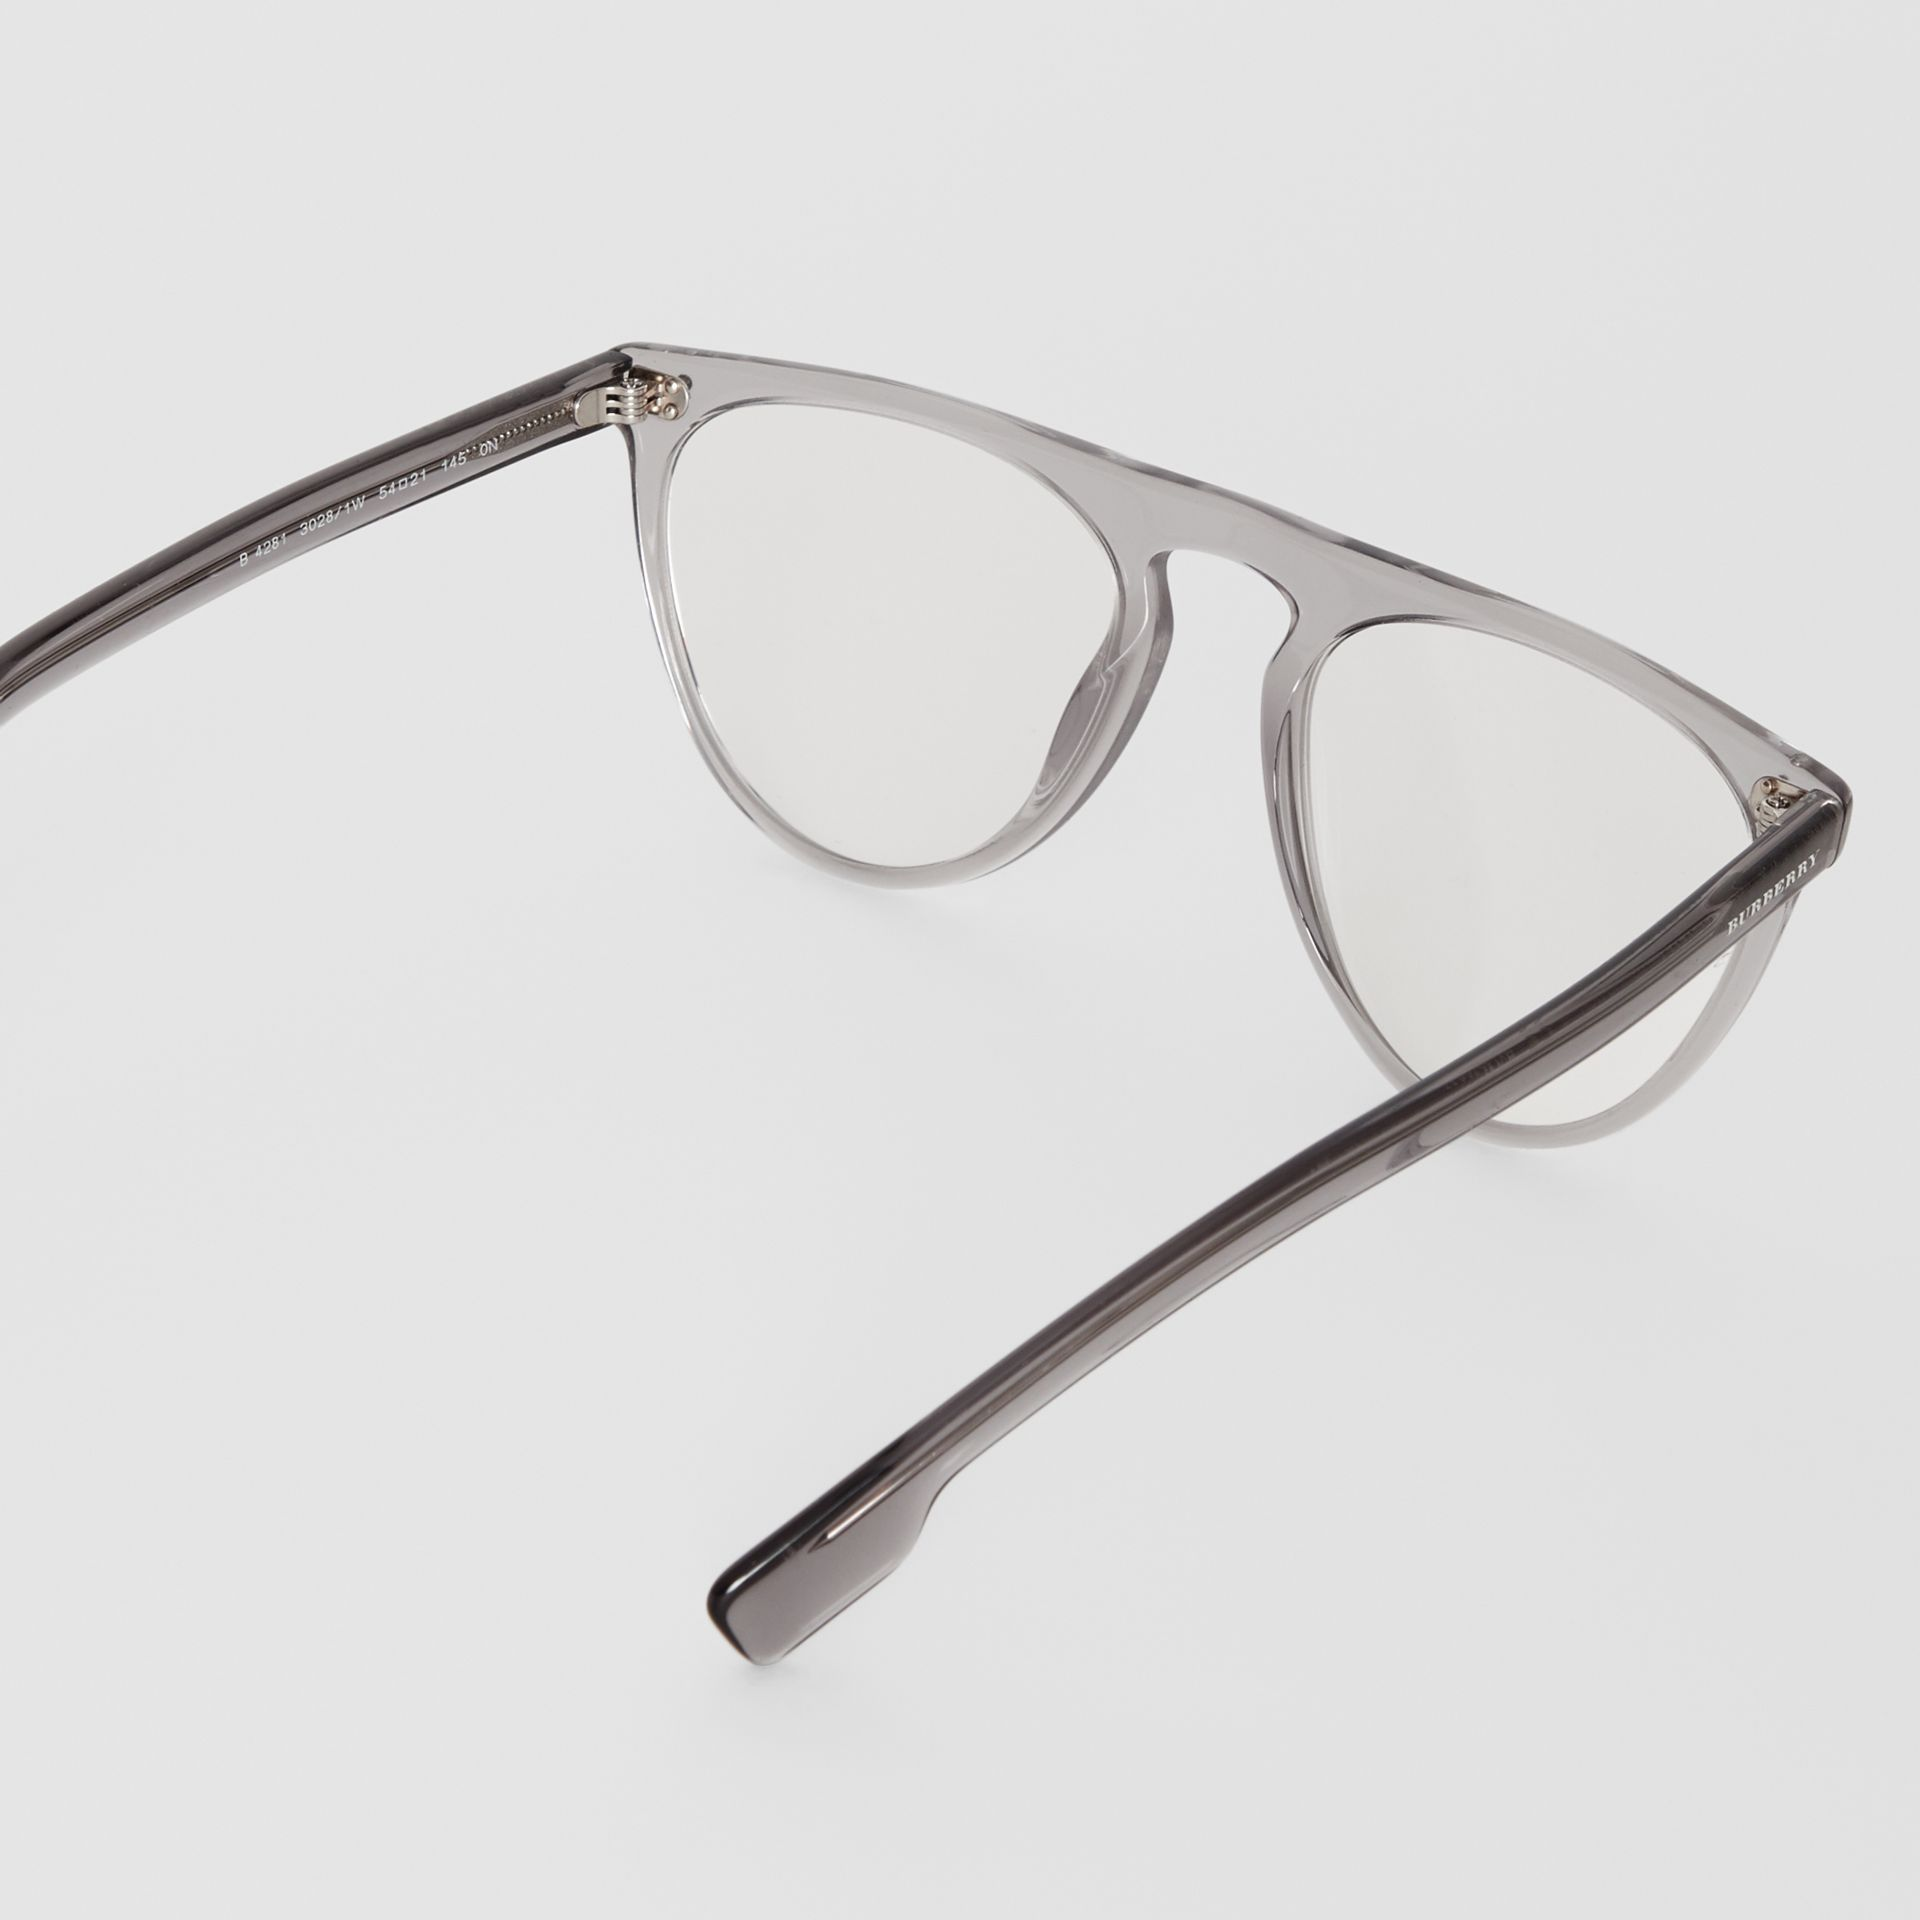 Keyhole D-shaped Optical Frames in Grey - Men | Burberry - gallery image 4